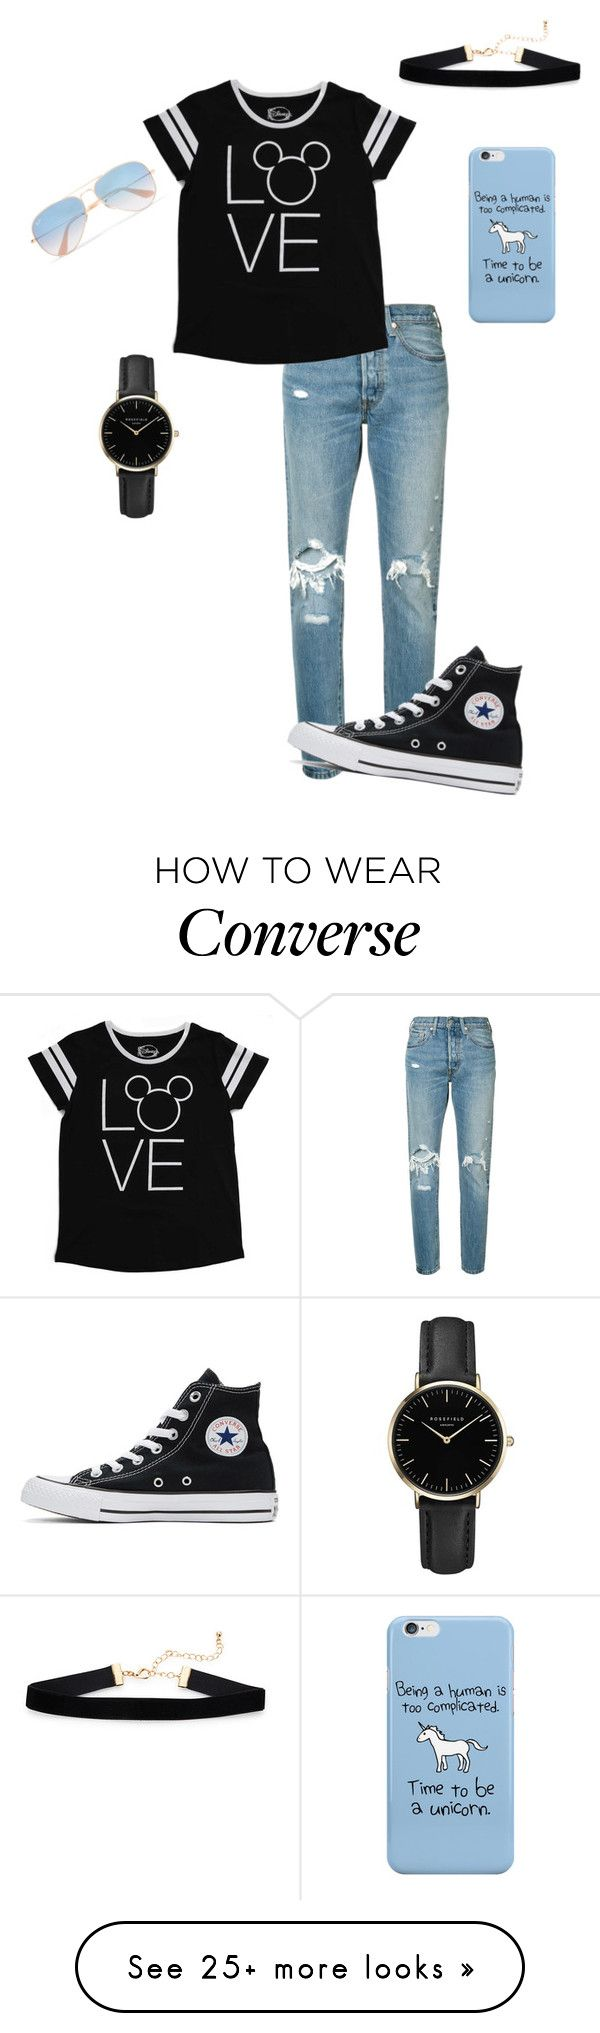 """Untitled #1008"" by crystalrose-014 on Polyvore featuring Levi's, Disney, Converse, ROSEFIELD and Ray-Ban"